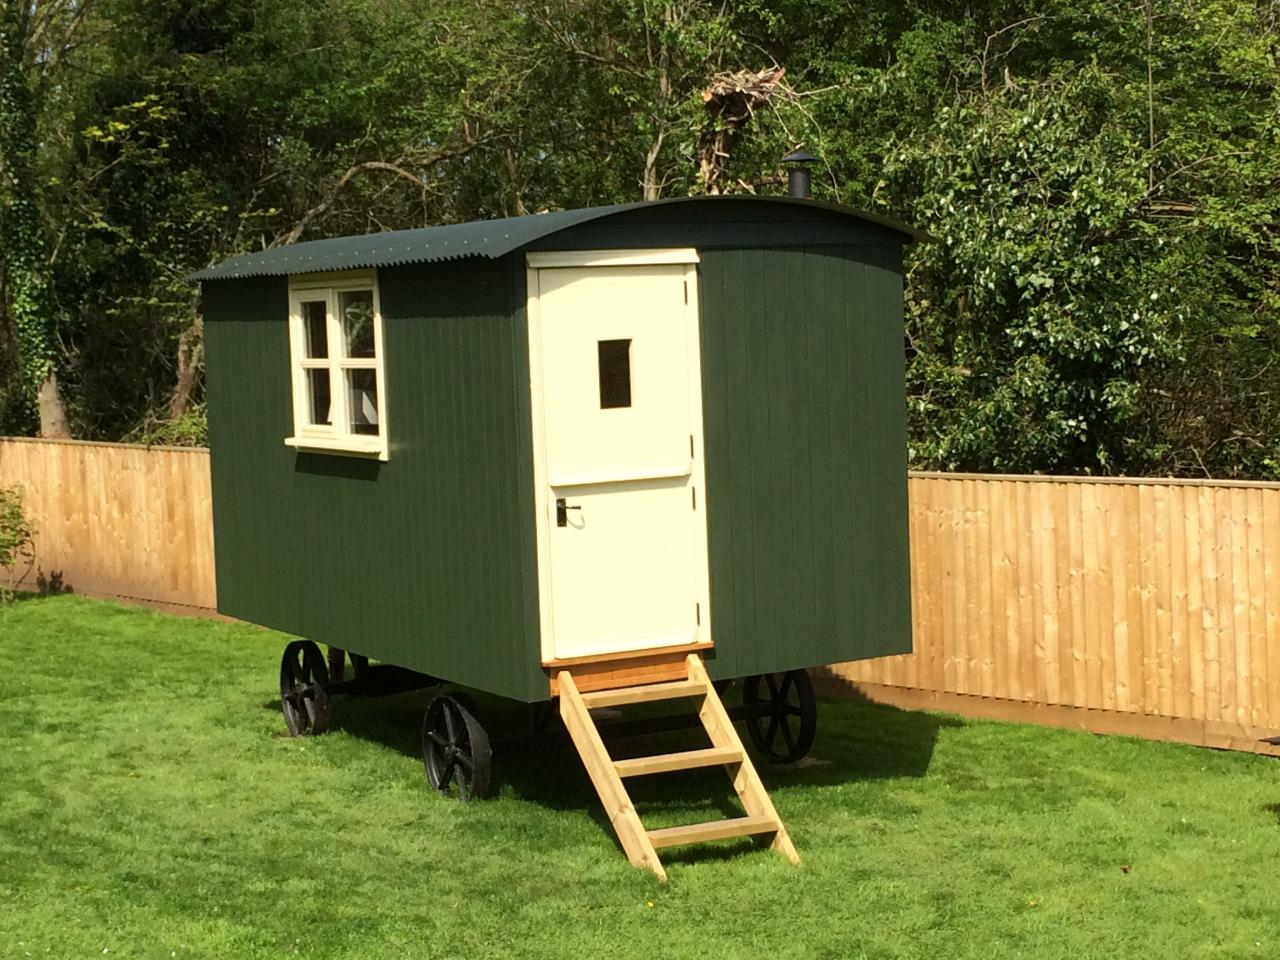 Cowley shepherds huts quality built huts at realistic for Garden hut sale